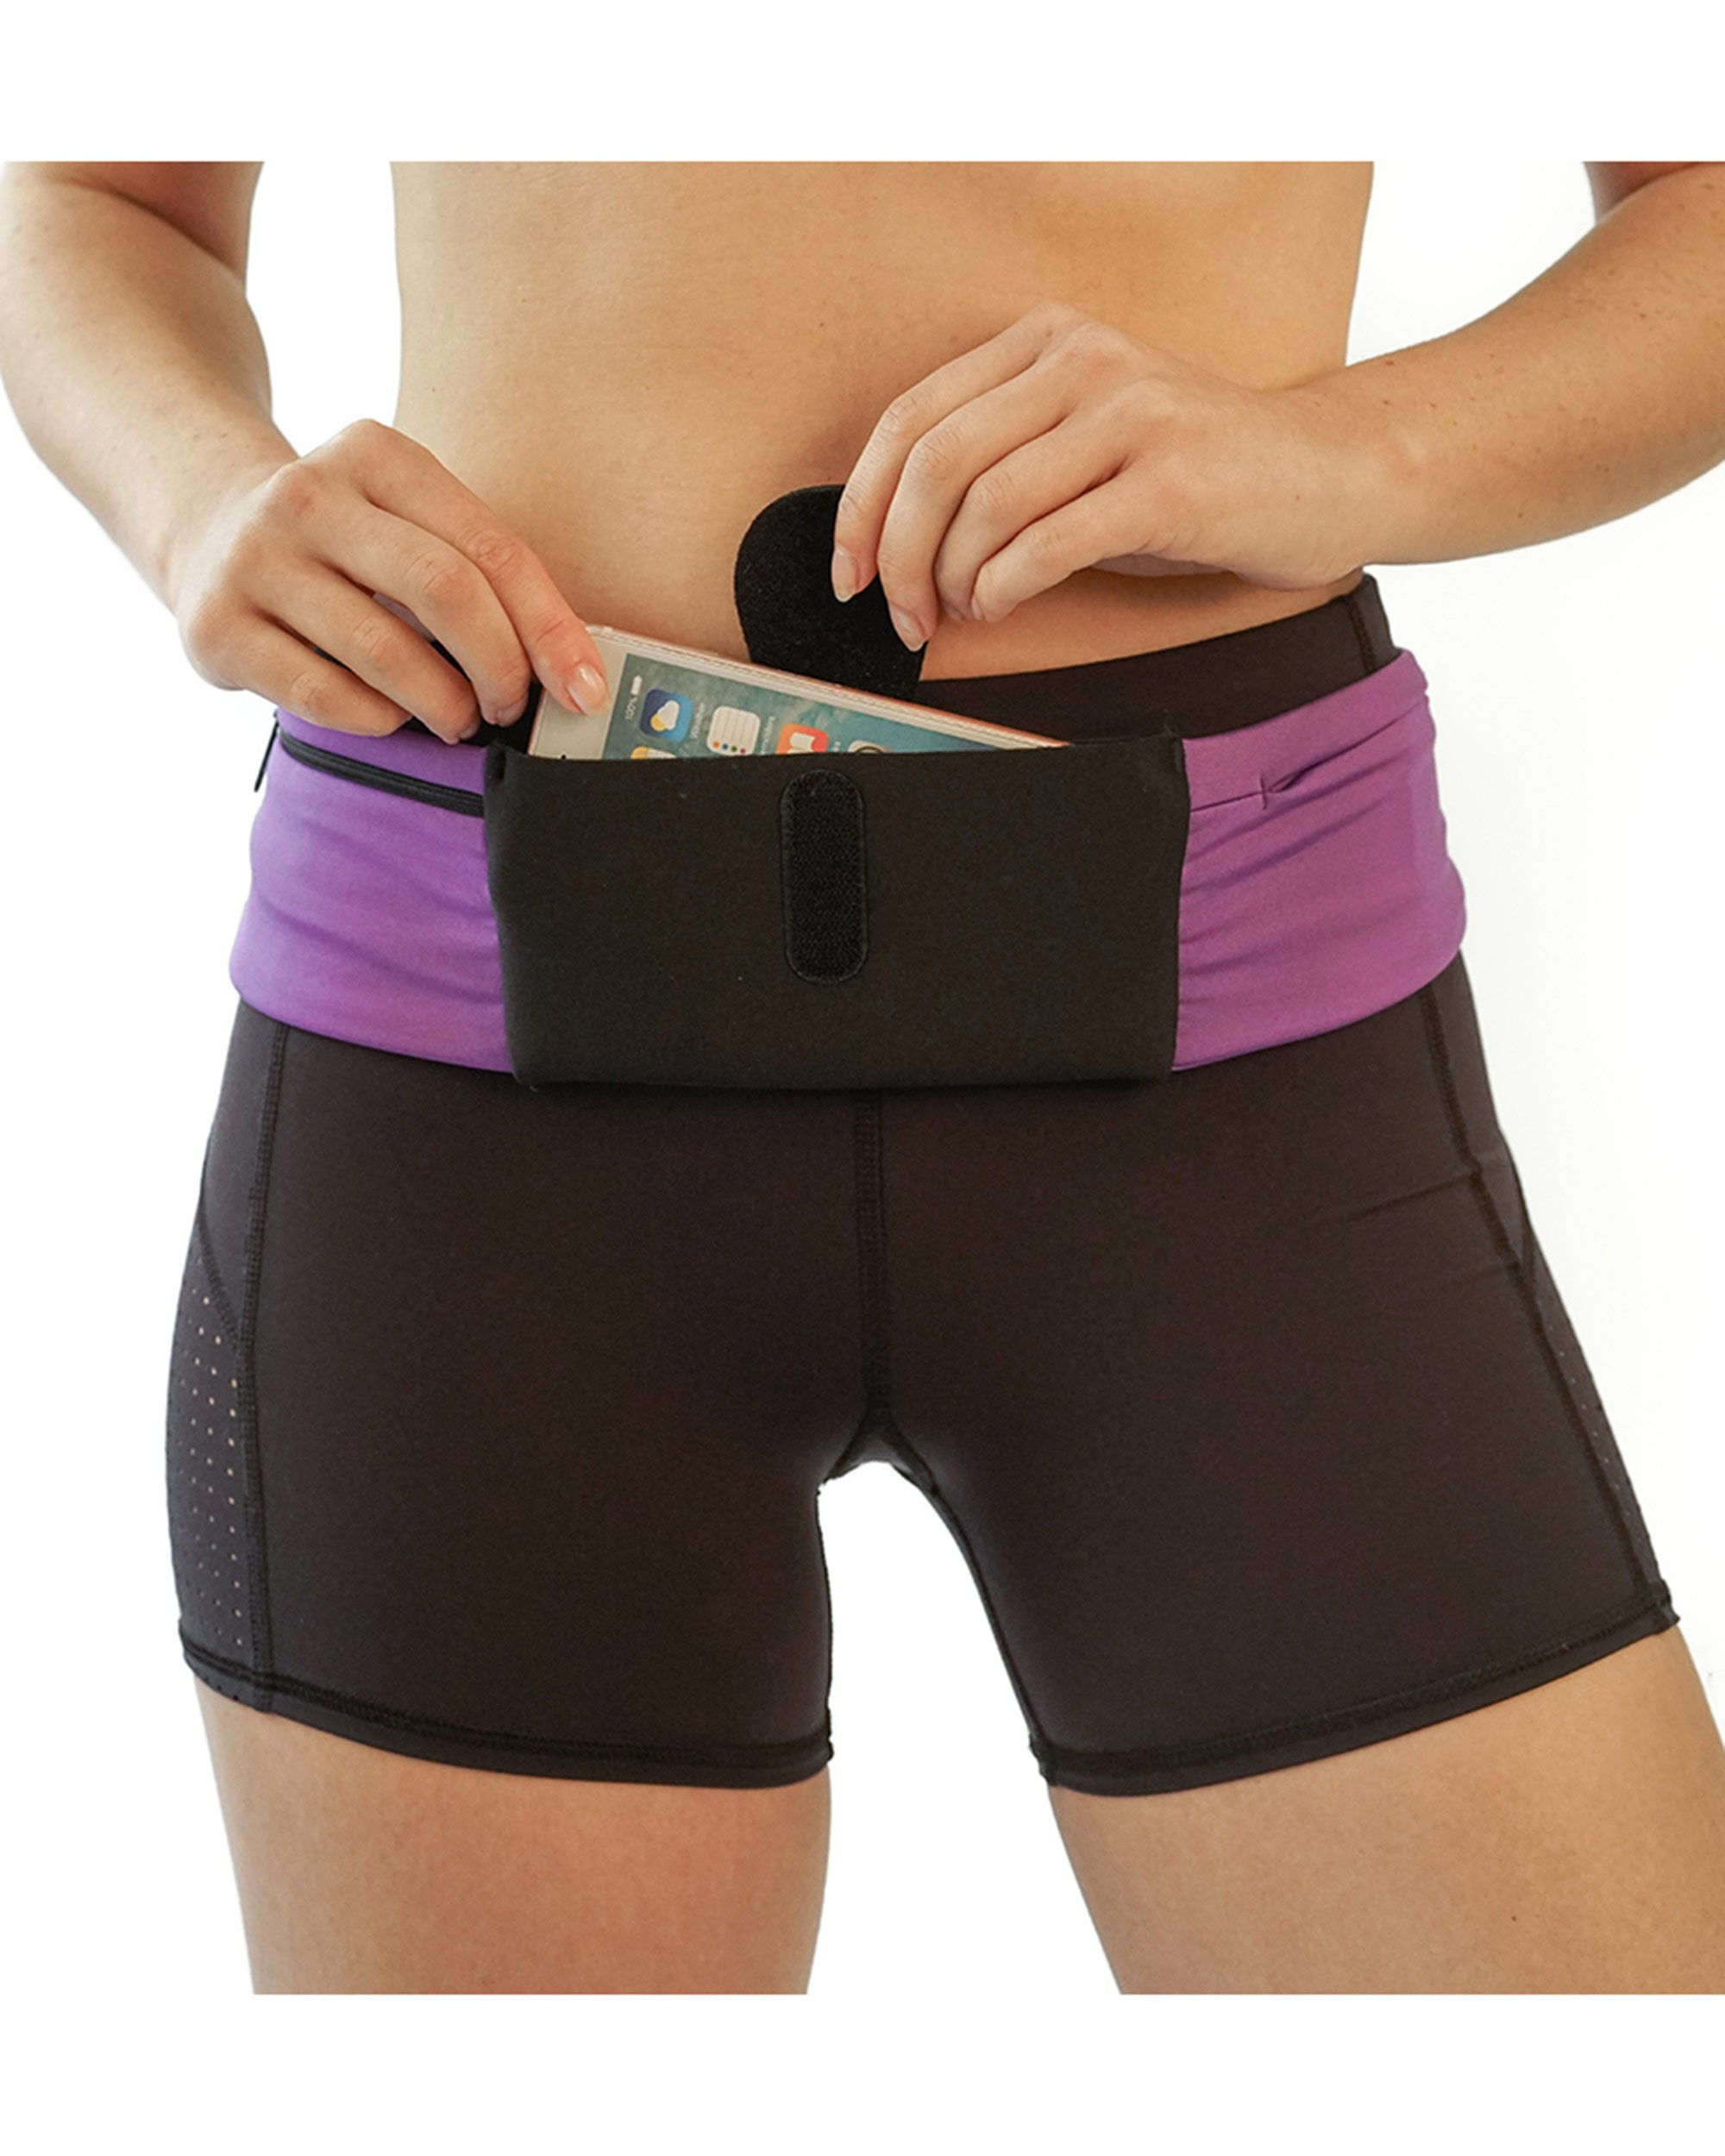 Three-Pocket Fitness Belt Pouch - Purple